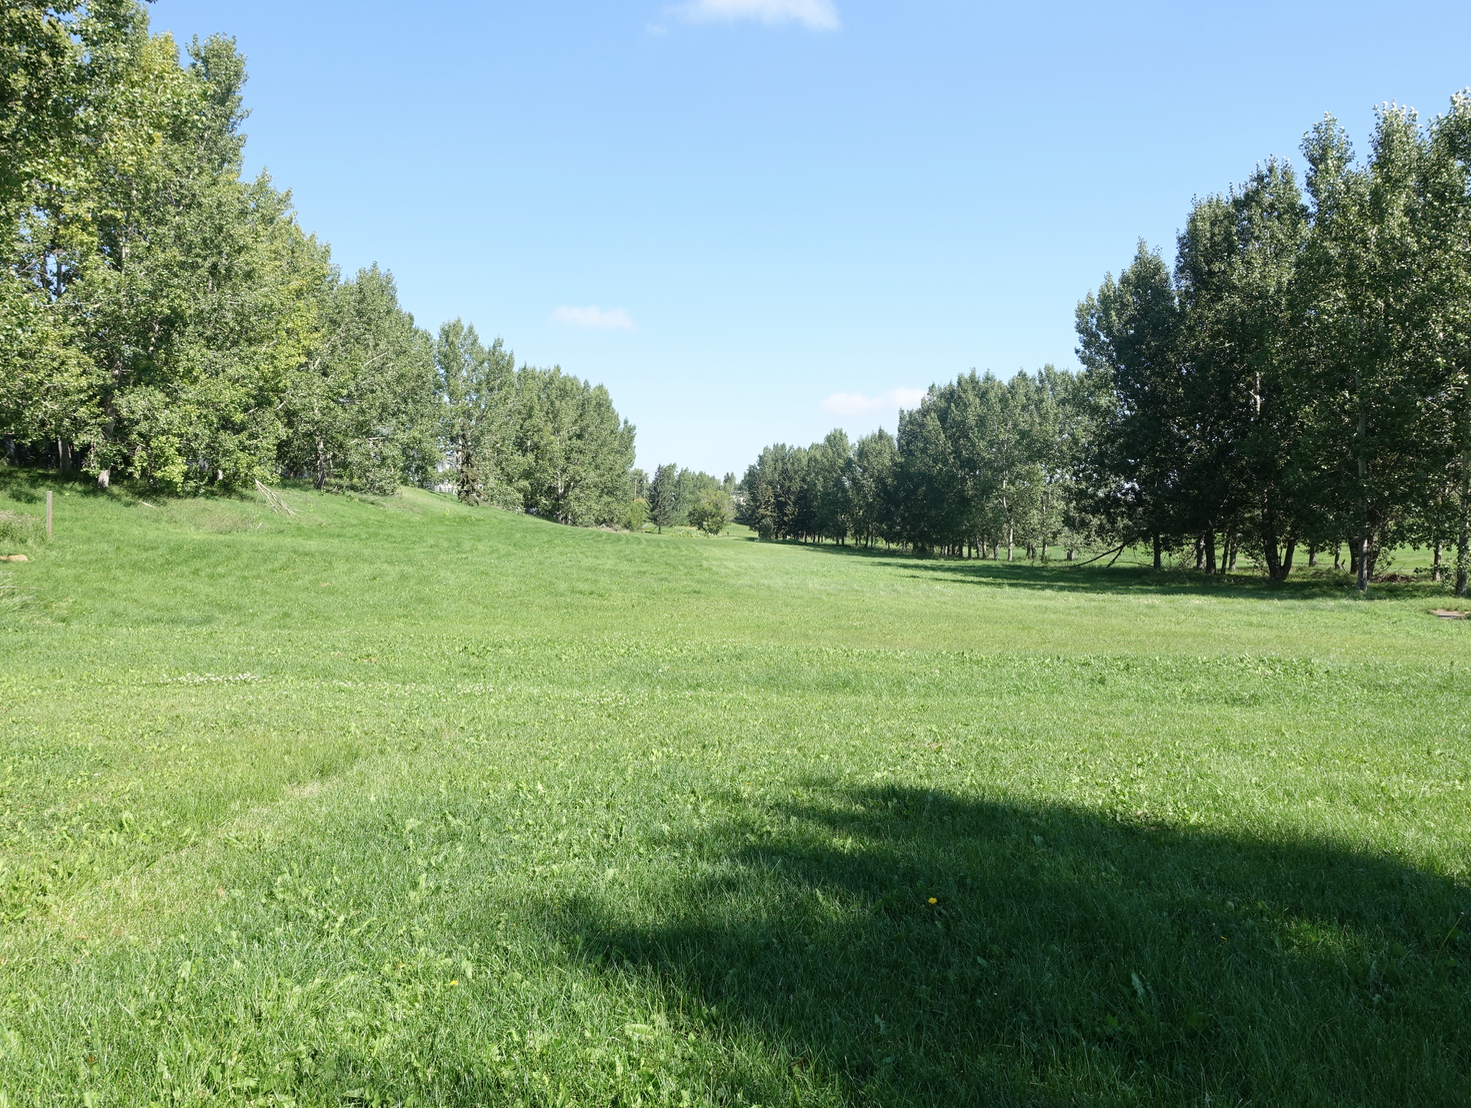 Highwood Golf Course tree-lined fairway.